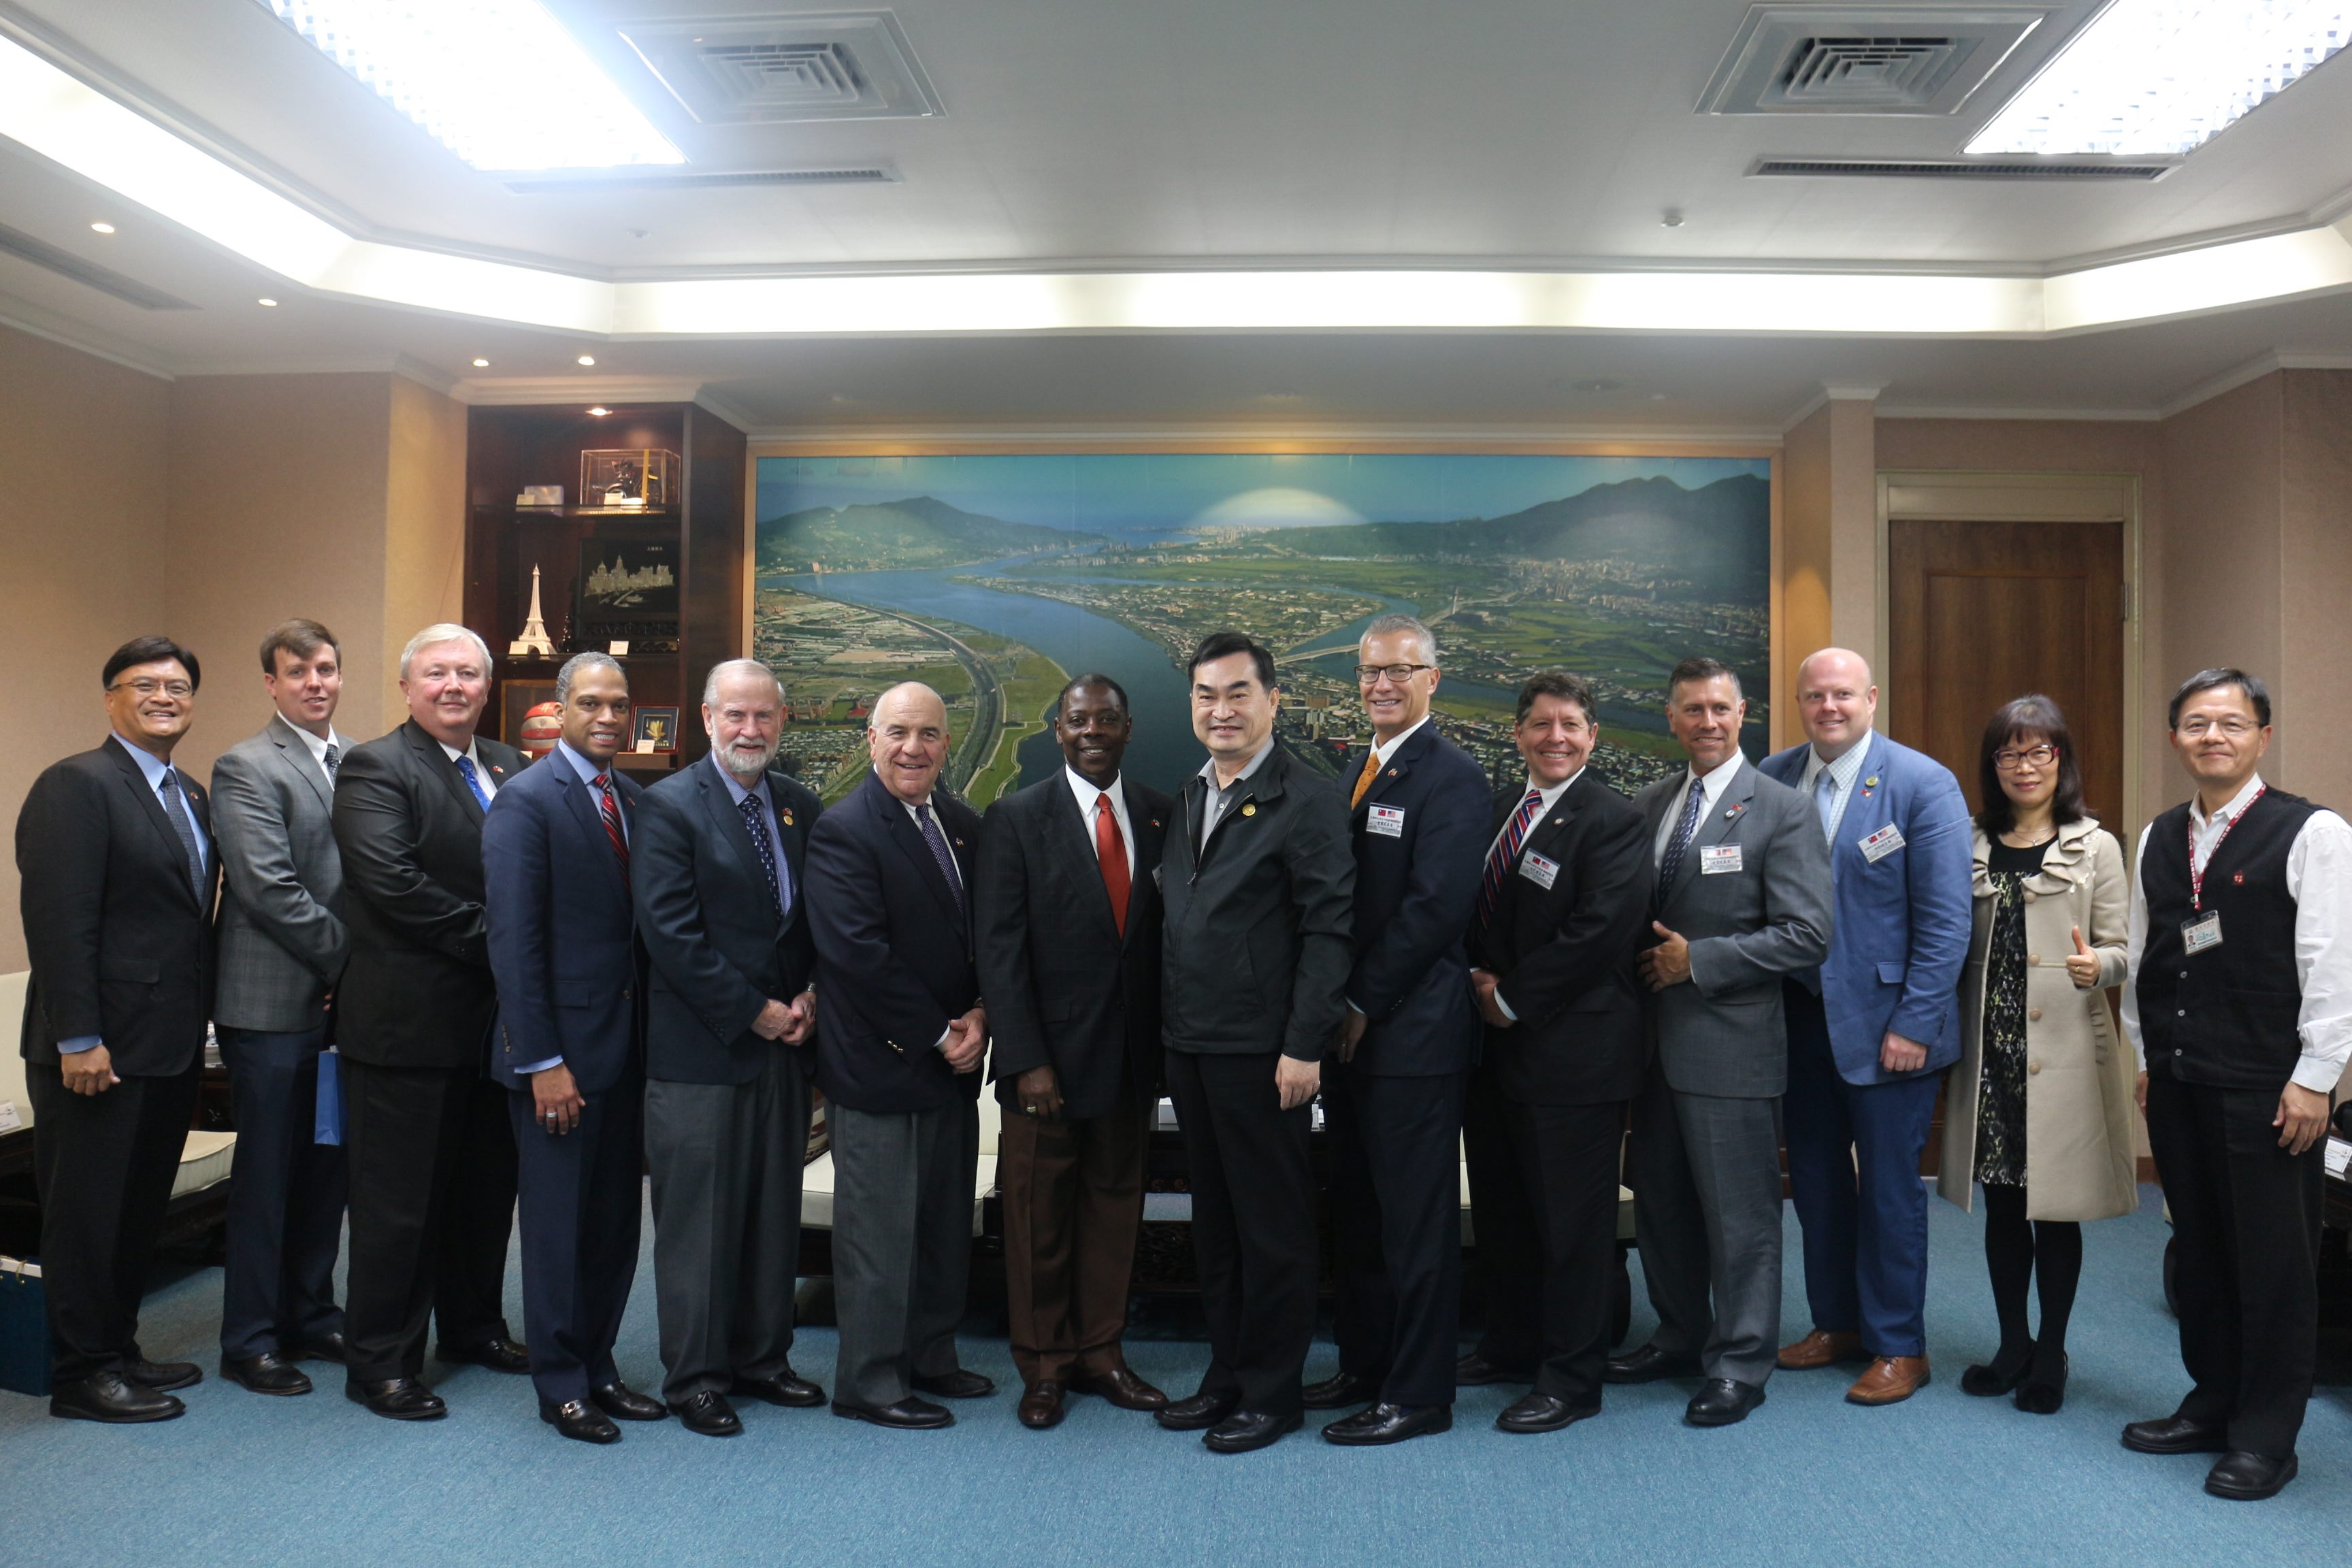 Delegates from the U.S. Mid-Atlantic States legislative leaders pay a courtesy call to Deputy Mayor Deng.